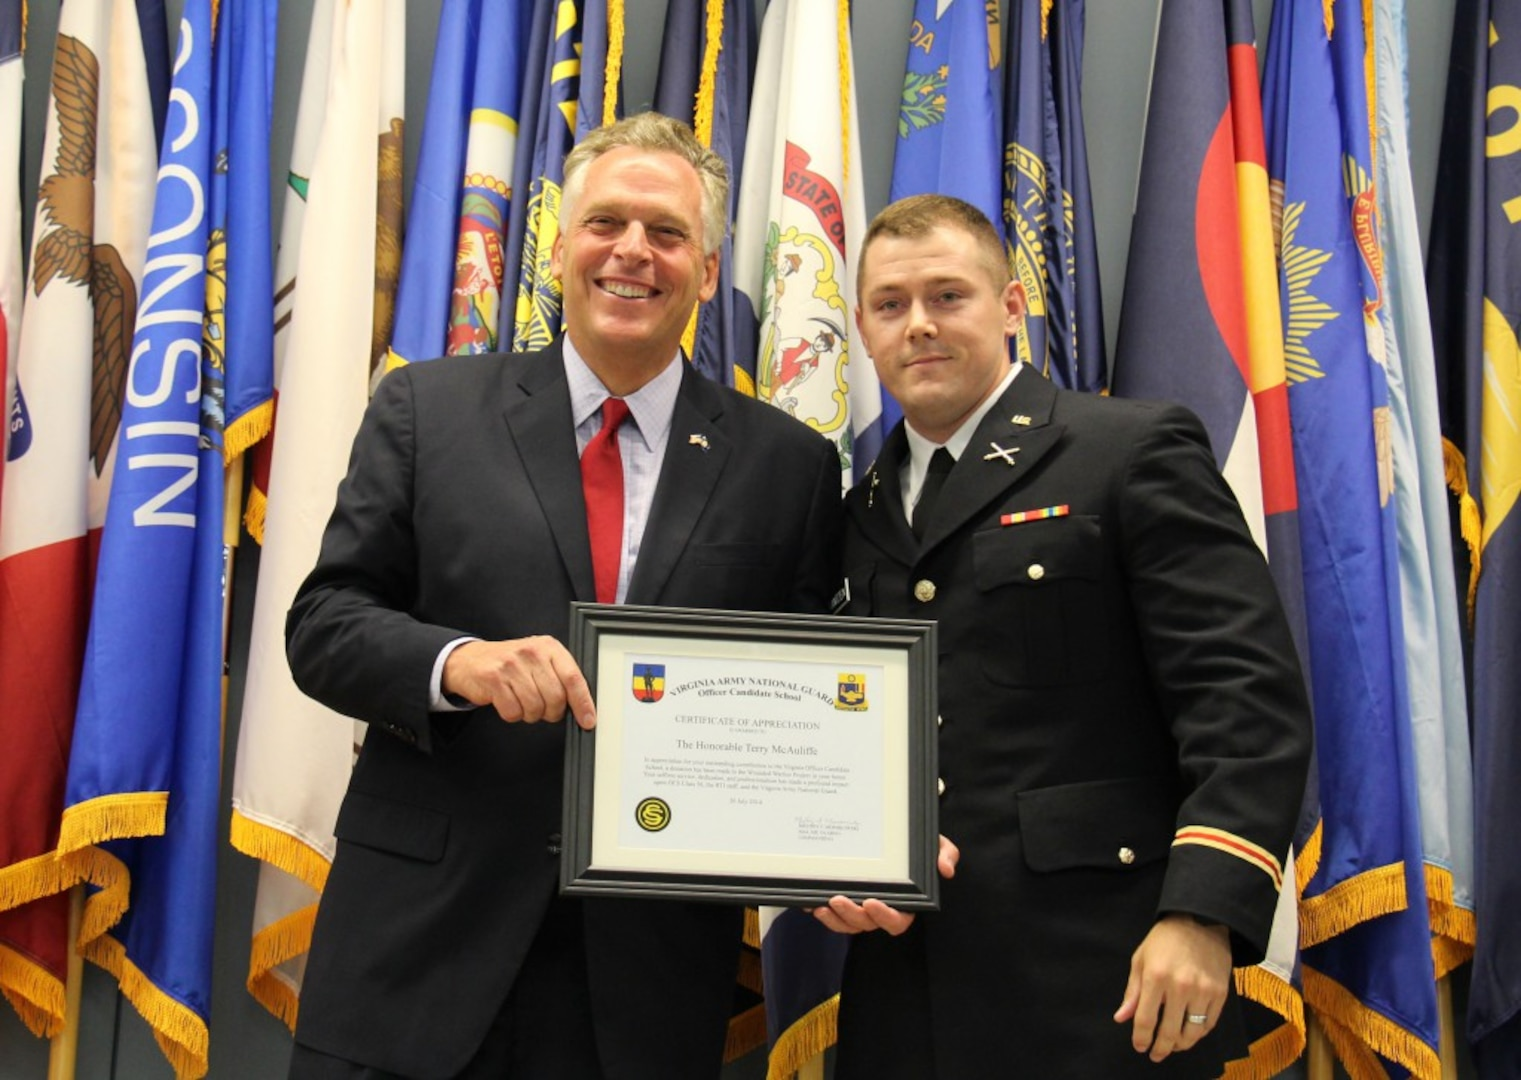 Second Lt. Daniel K. Frantzen presents Governor Terry McAuliffe with a certificate of appreciate for serving as the guest speaker for Officer Candidate School Class 56 July 26, 2014, at the 183rd Regiment, Regional Training Institute at Fort Pickett, Va.